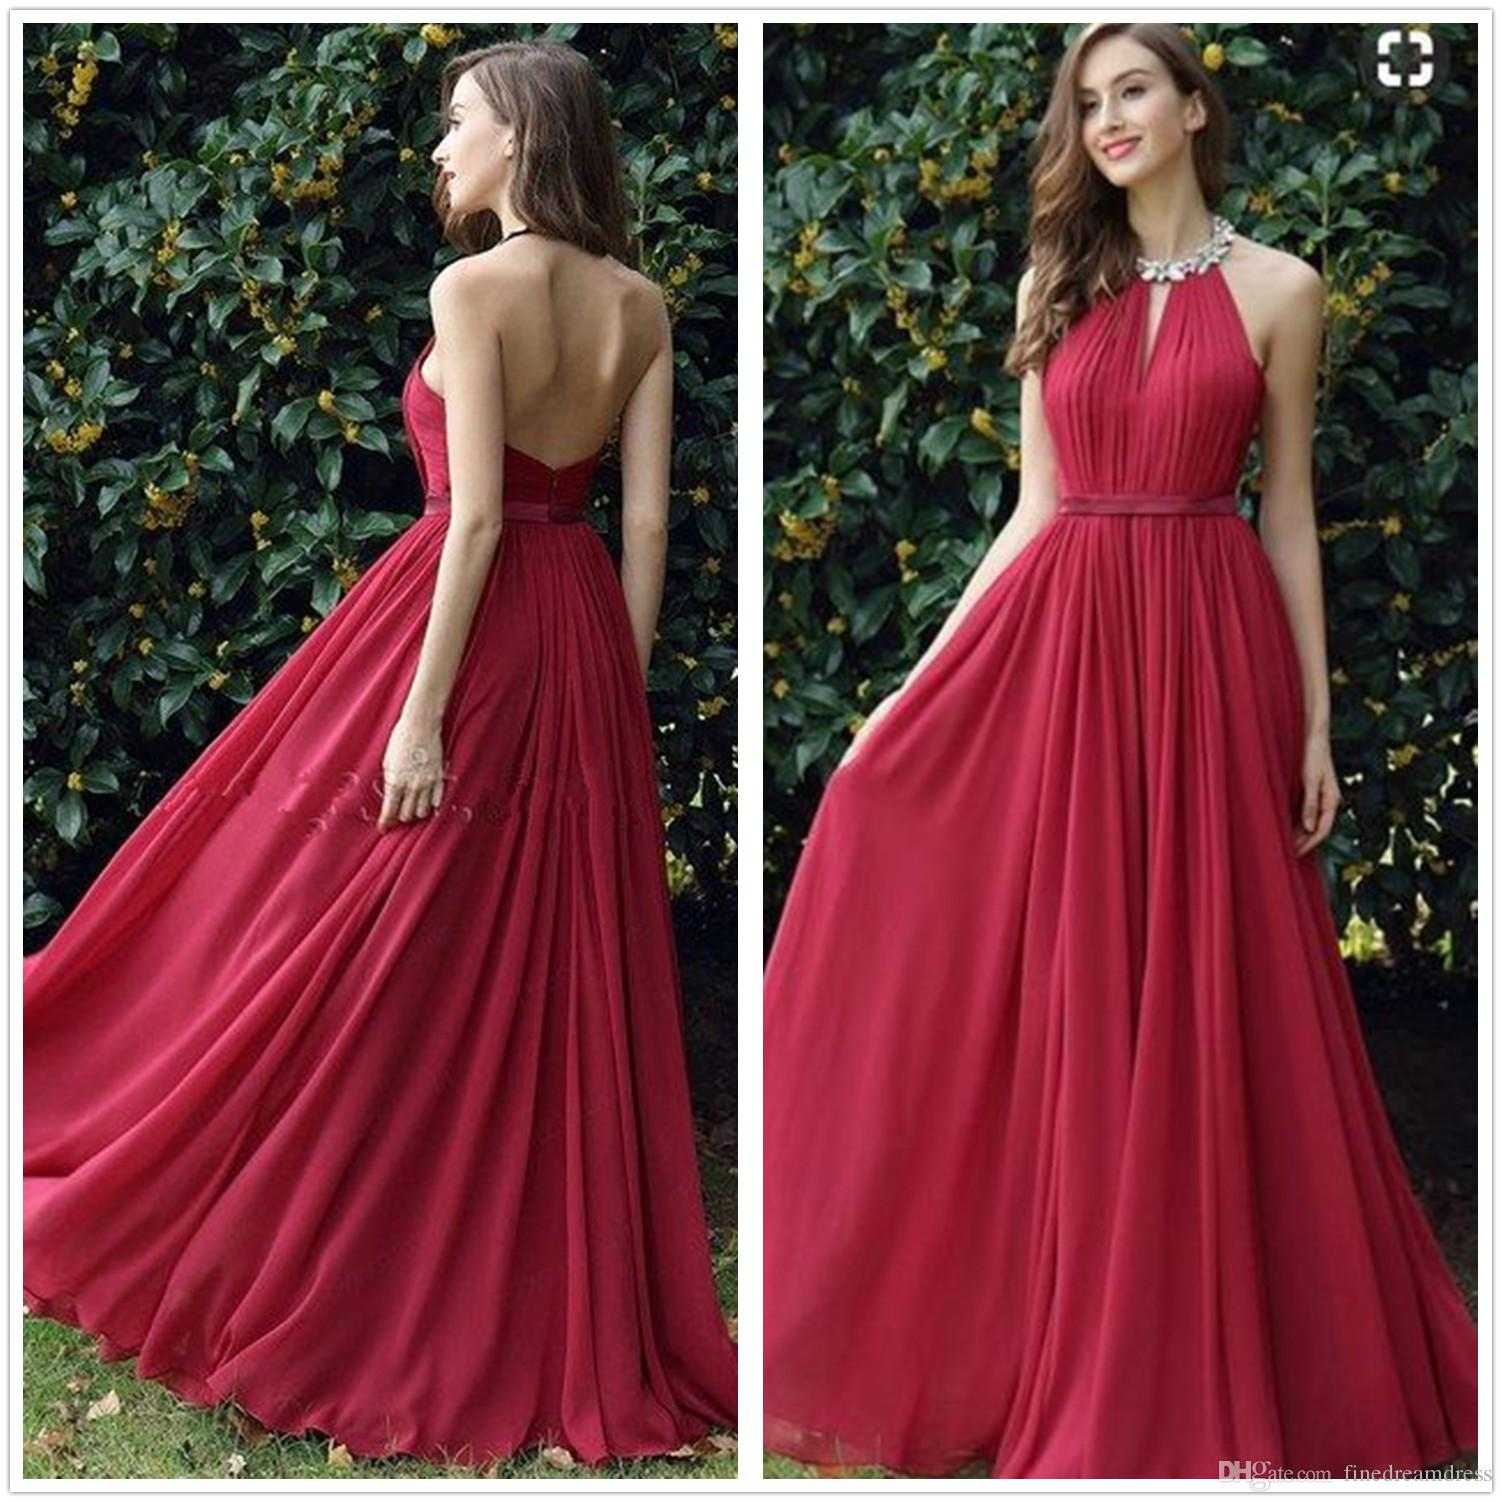 547a16a23aeea Red Hater Chiffon Long Prom Dresses 2018 Elegant Beaded Stones Top Ruched  Backless Floor Length Formal Party Evening Gowns Prom Dress Hire Uk Prom  Dresses ...